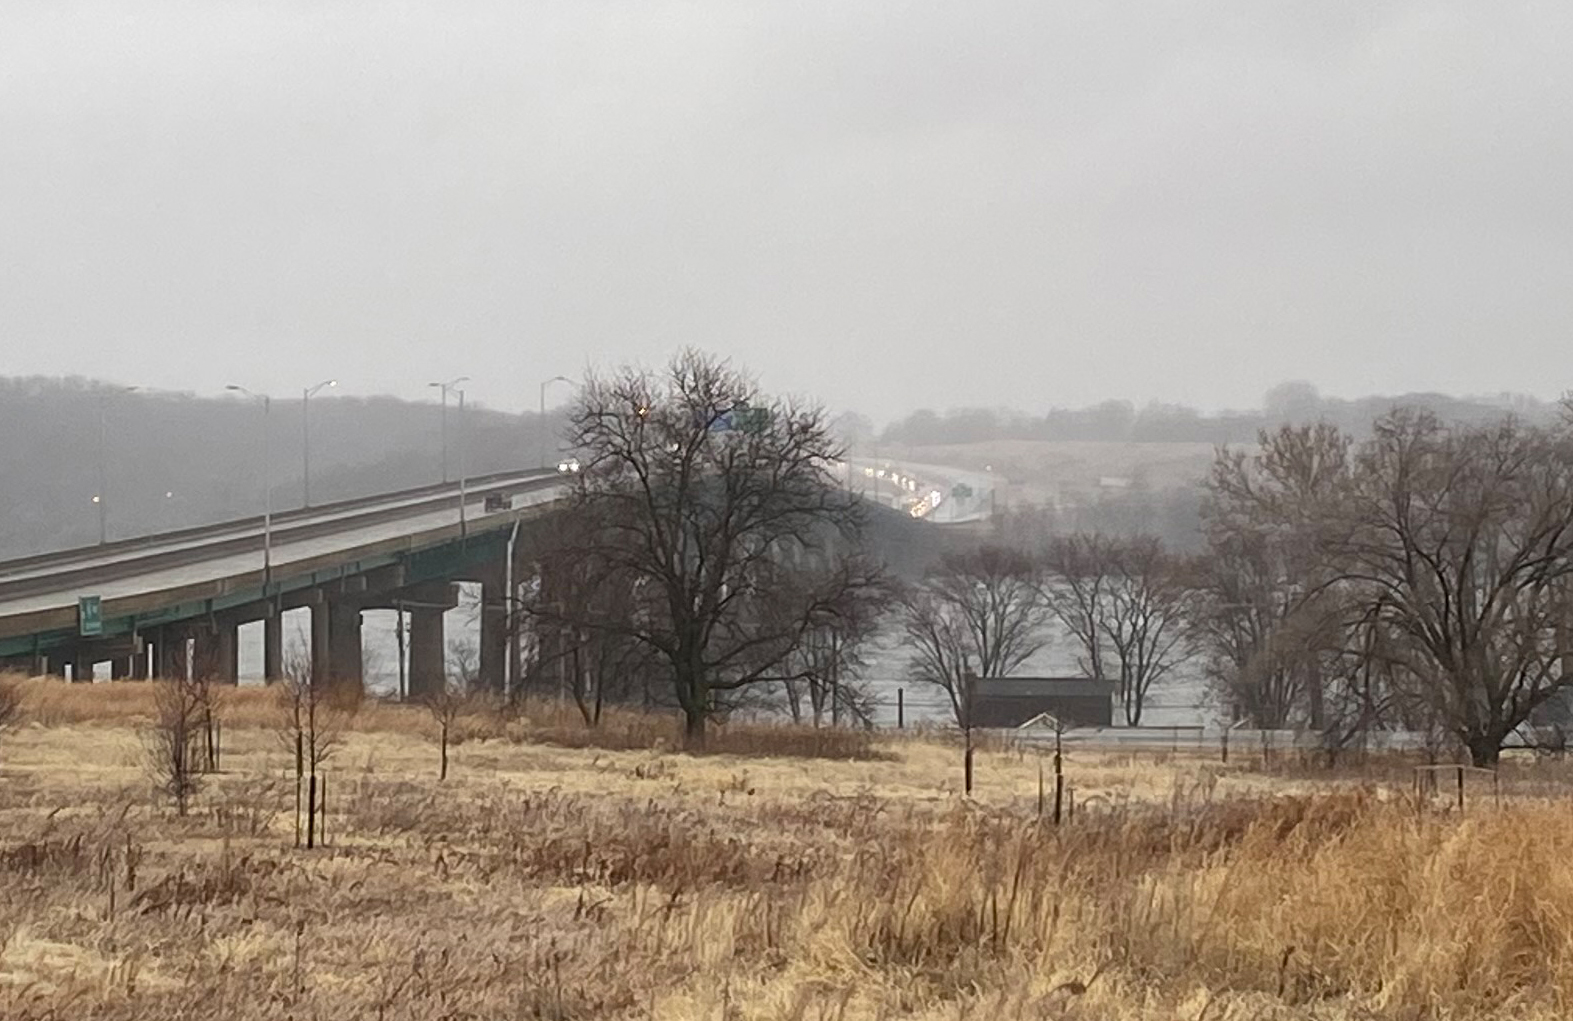 Traffic backup on the 1-80 Bridge near LeClaire, Iowa on Januray 11, 2020 (Joshua Vinson, Ourquadcities.com))